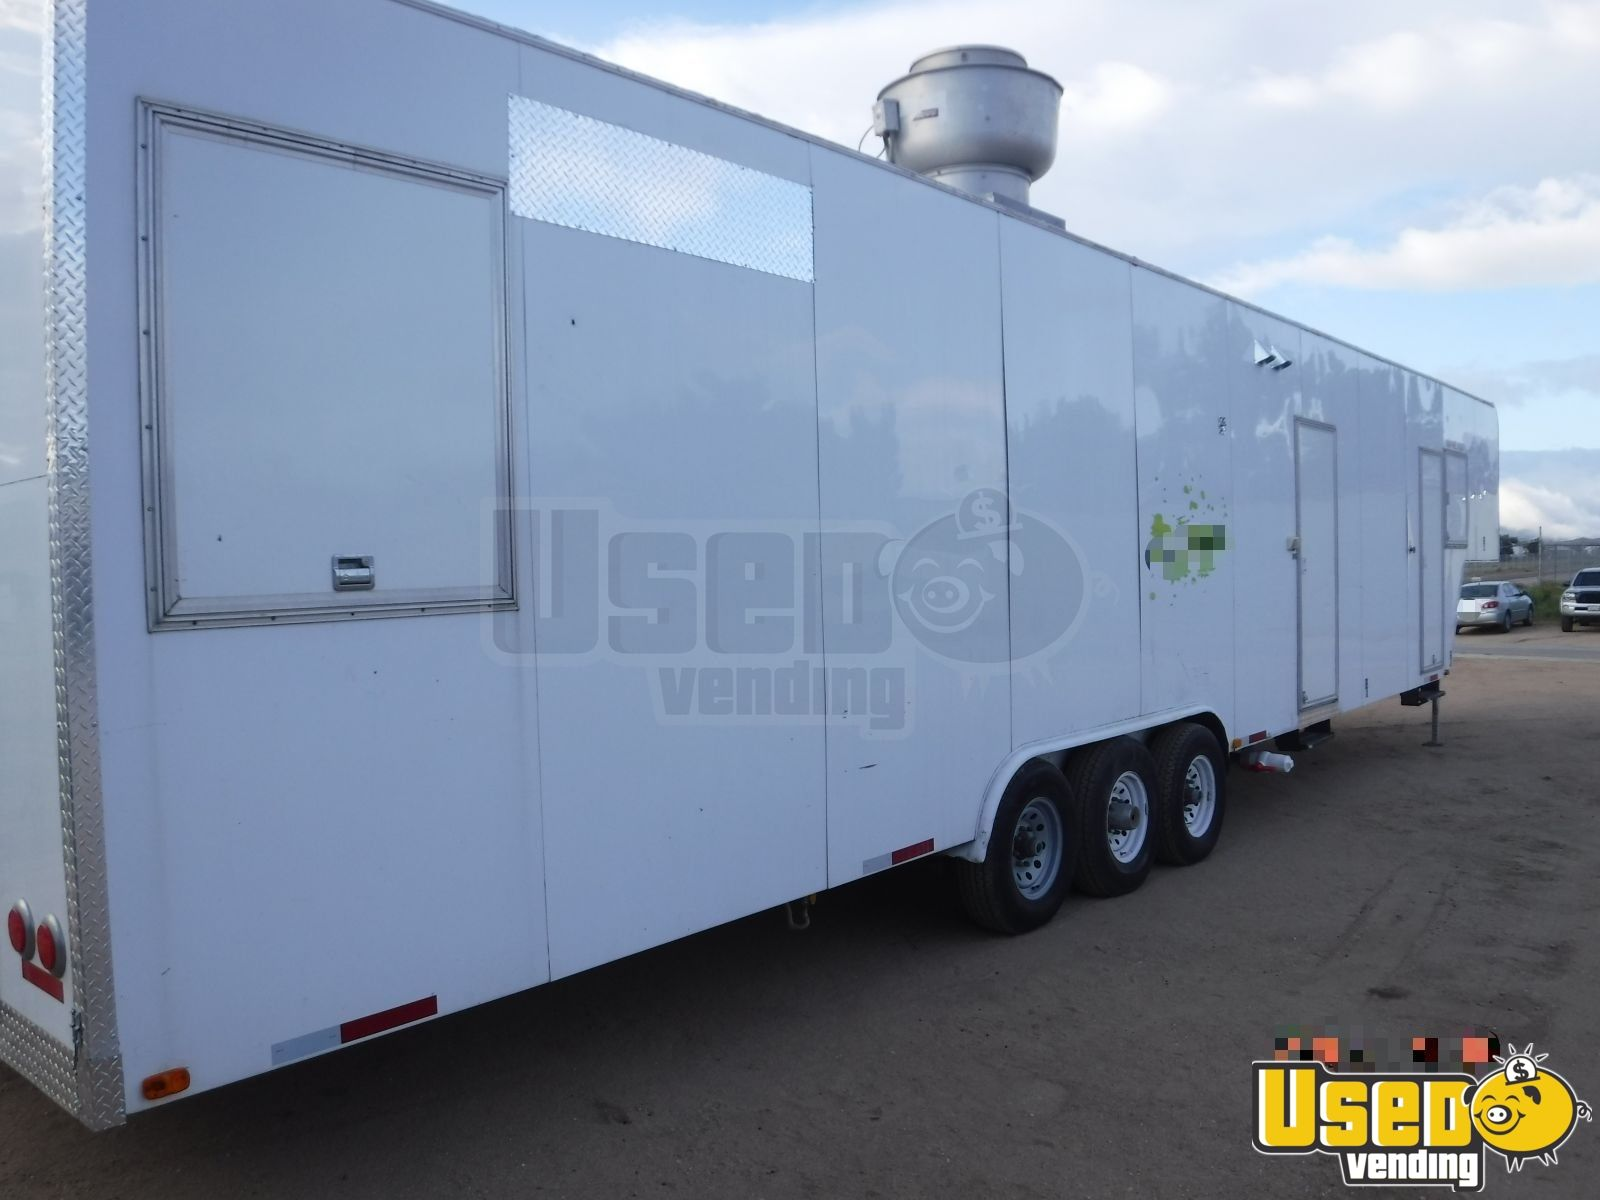 2009 Universal Magnum By California Cart Builder All-purpose Food Trailer Concession Window Colorado for Sale - 3